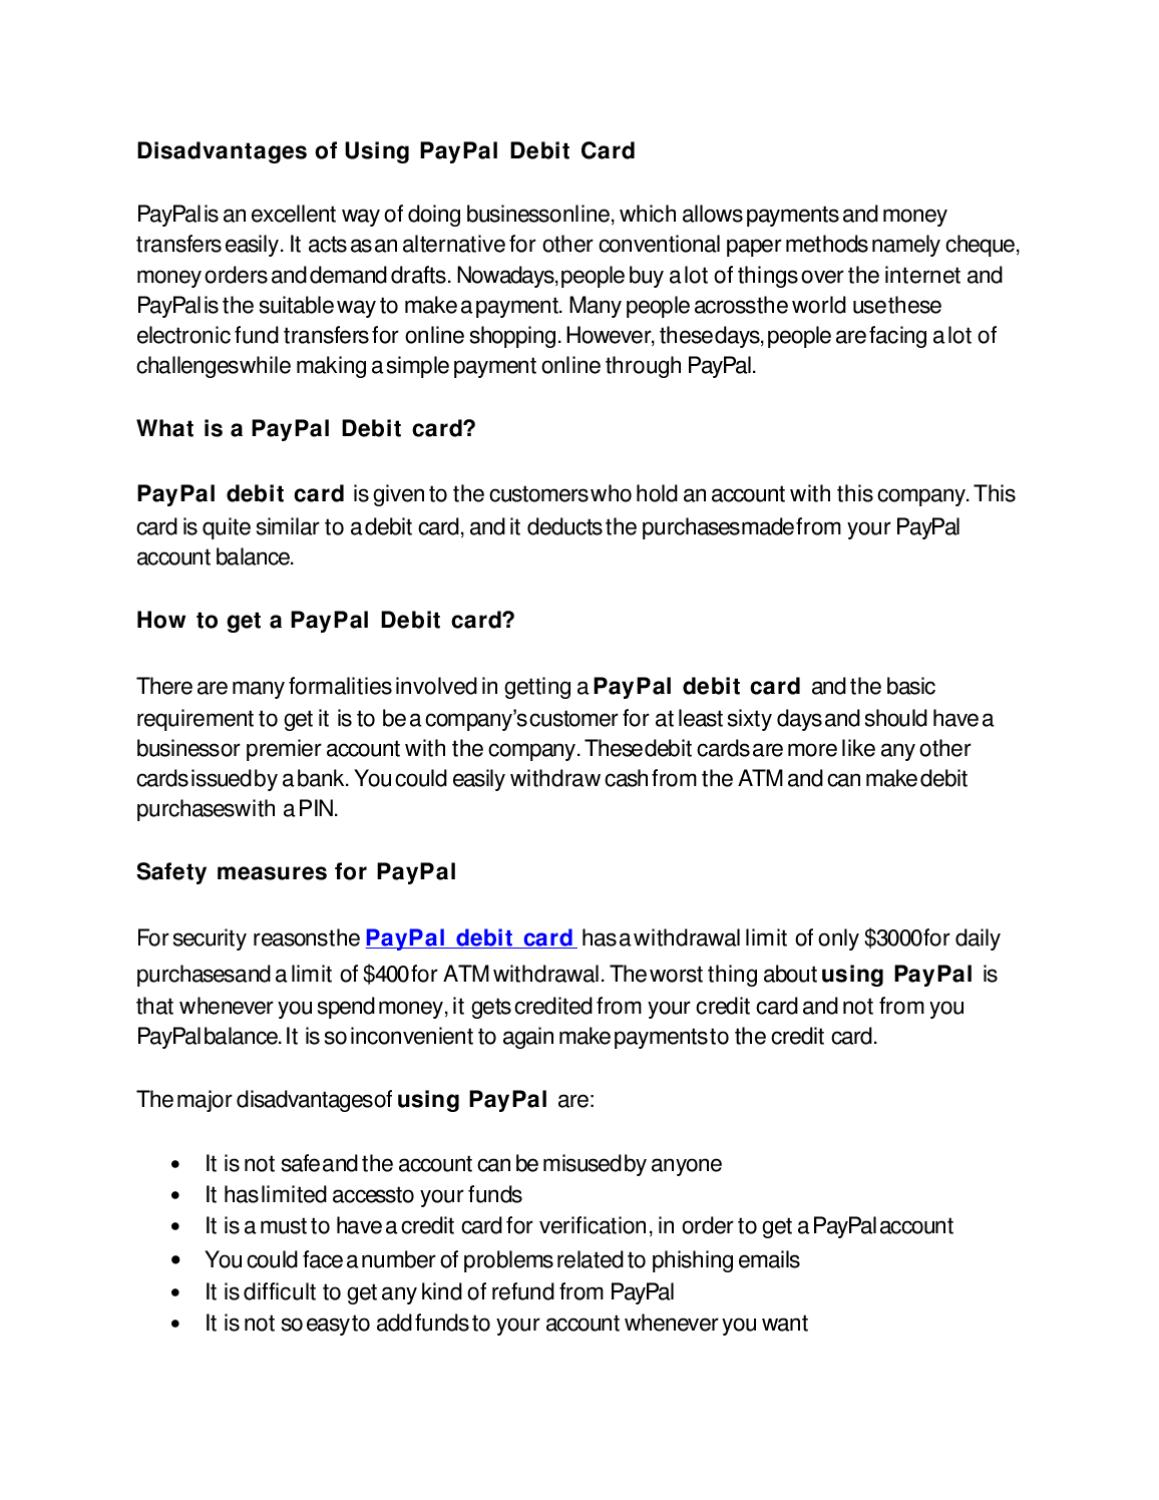 Disadvantages of Using PayPal Debit Card by Marriya Luis - issuu